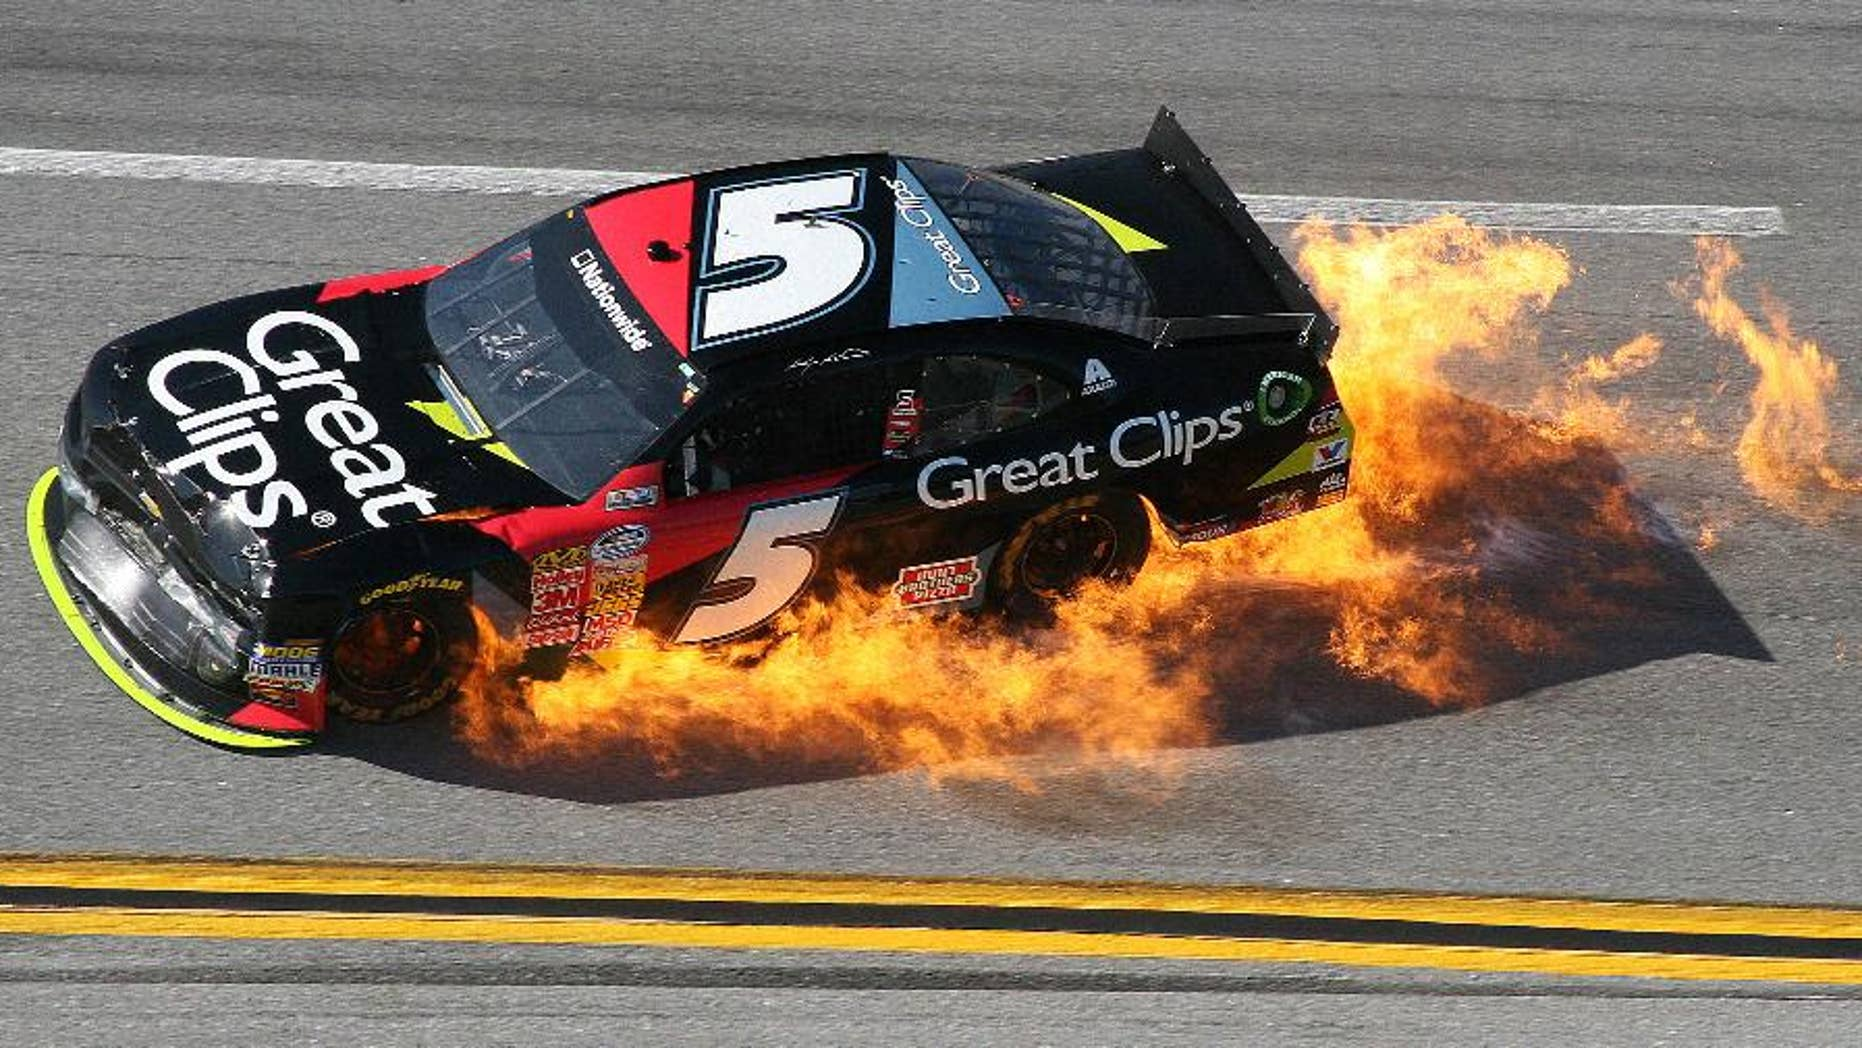 Kasey Kahne (5) moves off the track into Turn 4 during the NASCAR Aaron's 312 Nationwide series auto race at Talladega Superspeedway, Saturday, May 3, 2014, in Talladega, Ala. (AP Photo/Dale Davis)